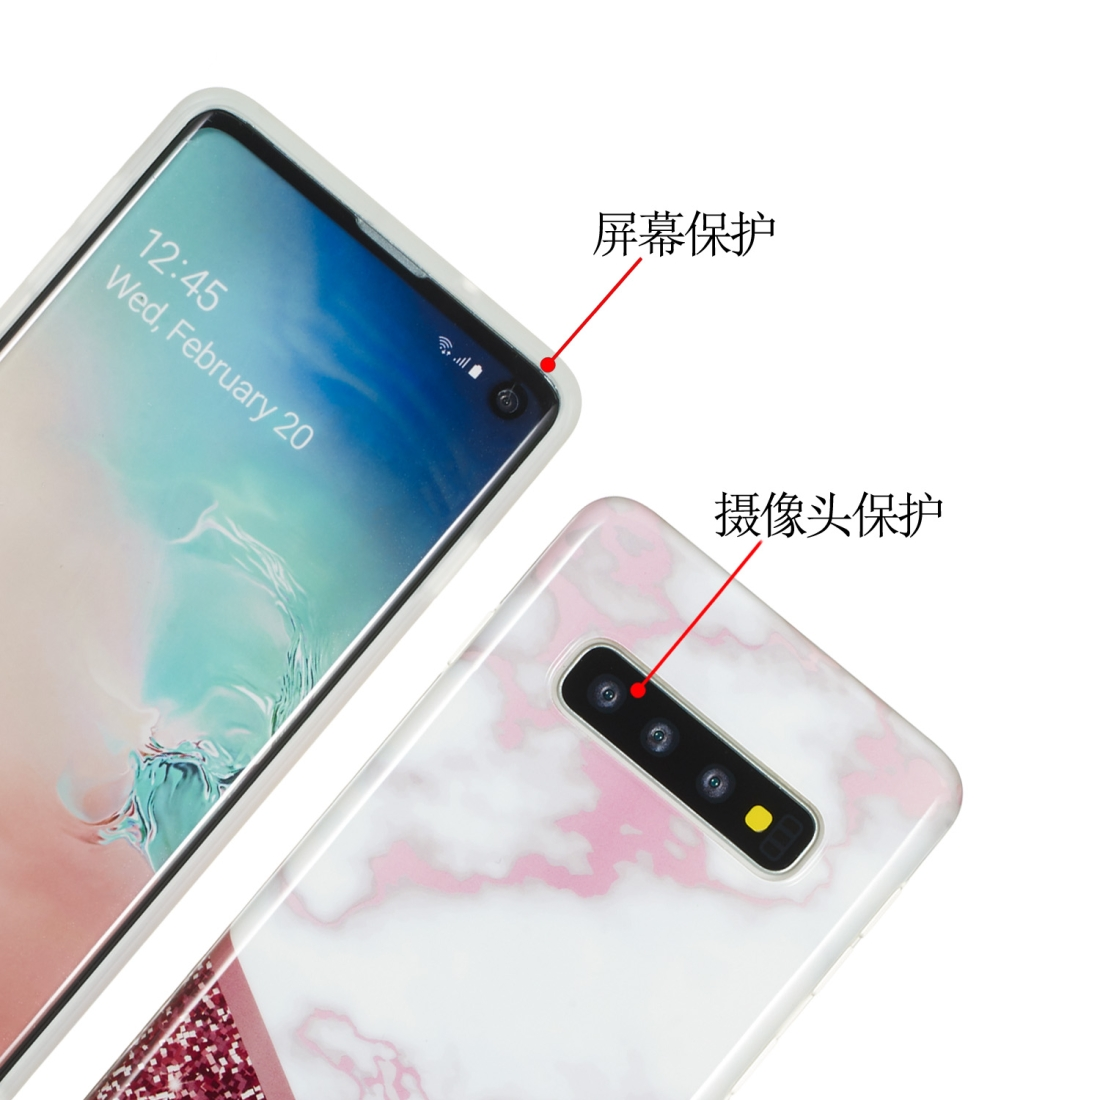 TPU Protective Case For Galaxy S10 Plus (Rose Flash Marble)